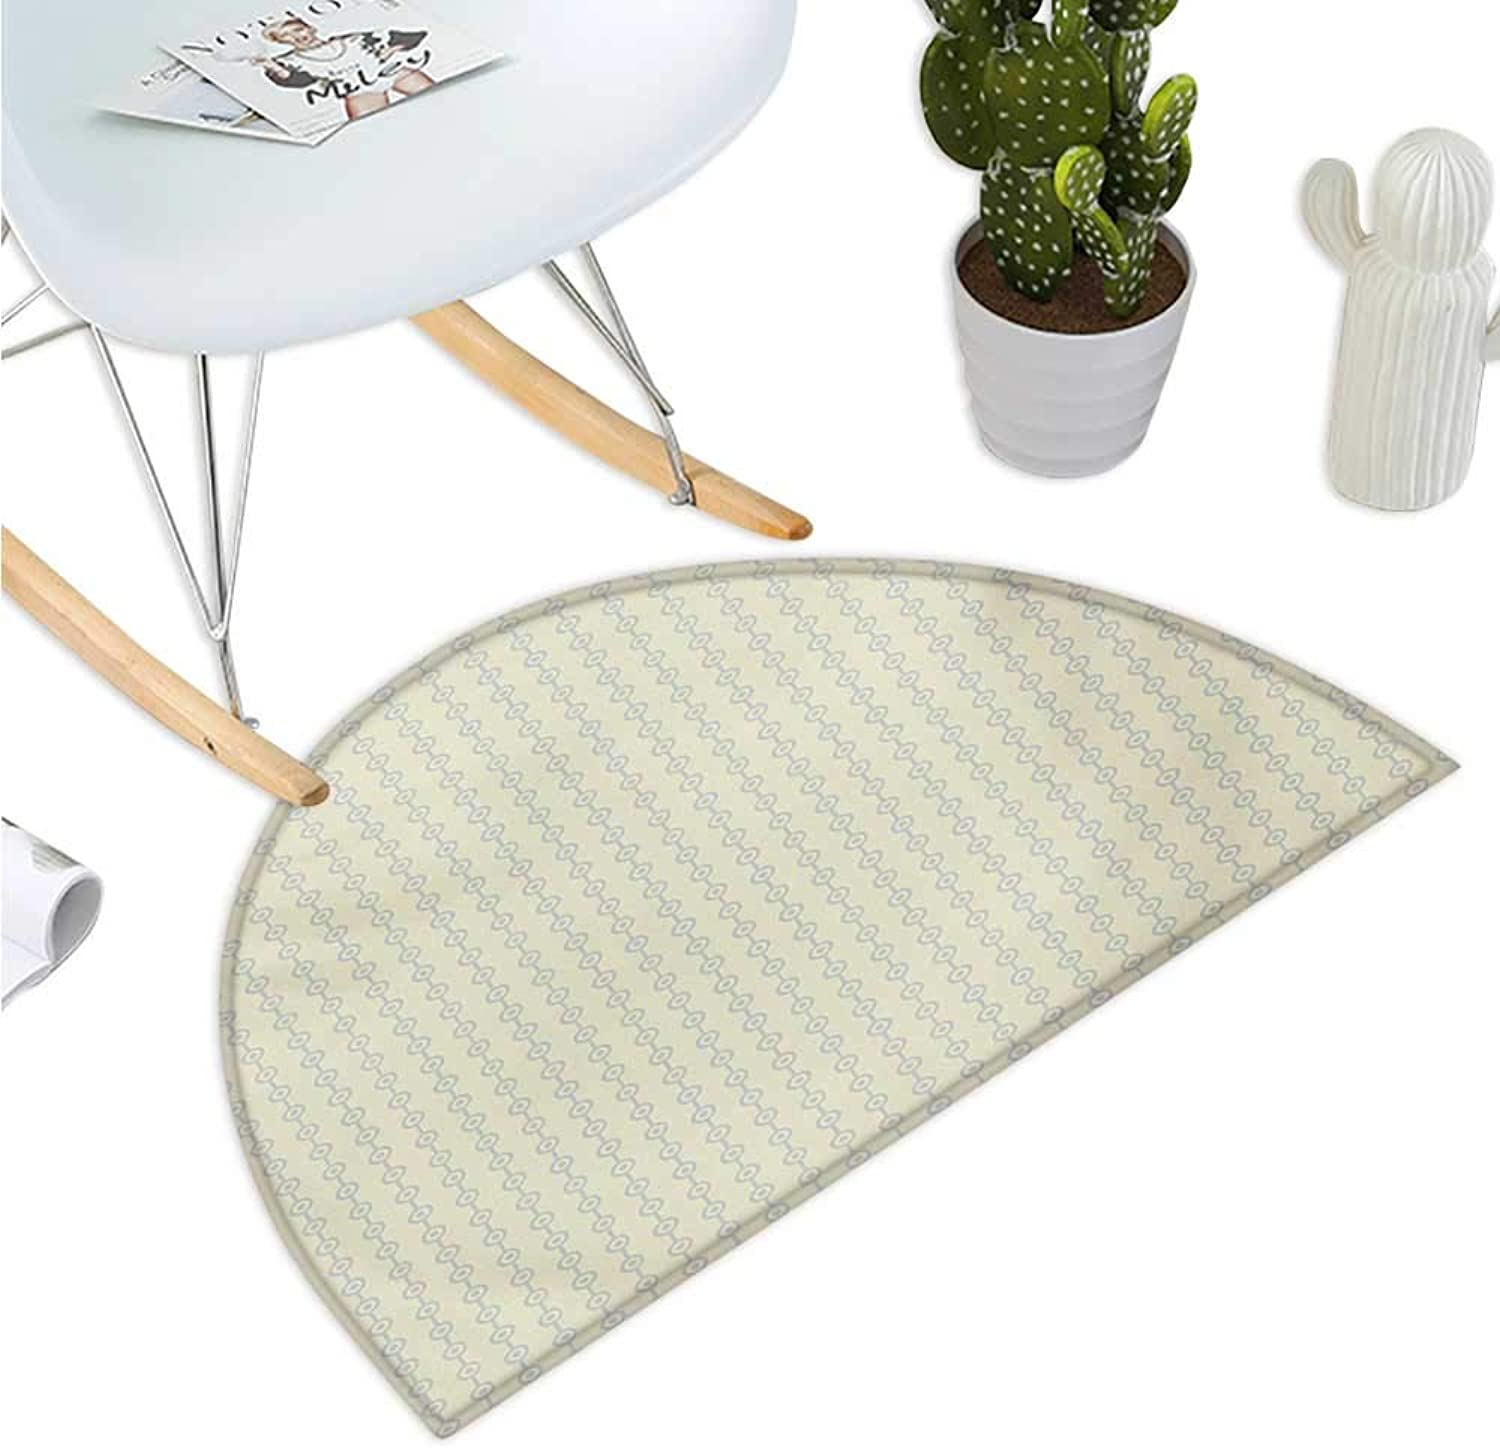 Retro Half Round Door mats greenical Geometric Circular Pattern with Dots Continuous Chain Design Bathroom Mat H 47.2  xD 70.8  Pale Lavander and Cream